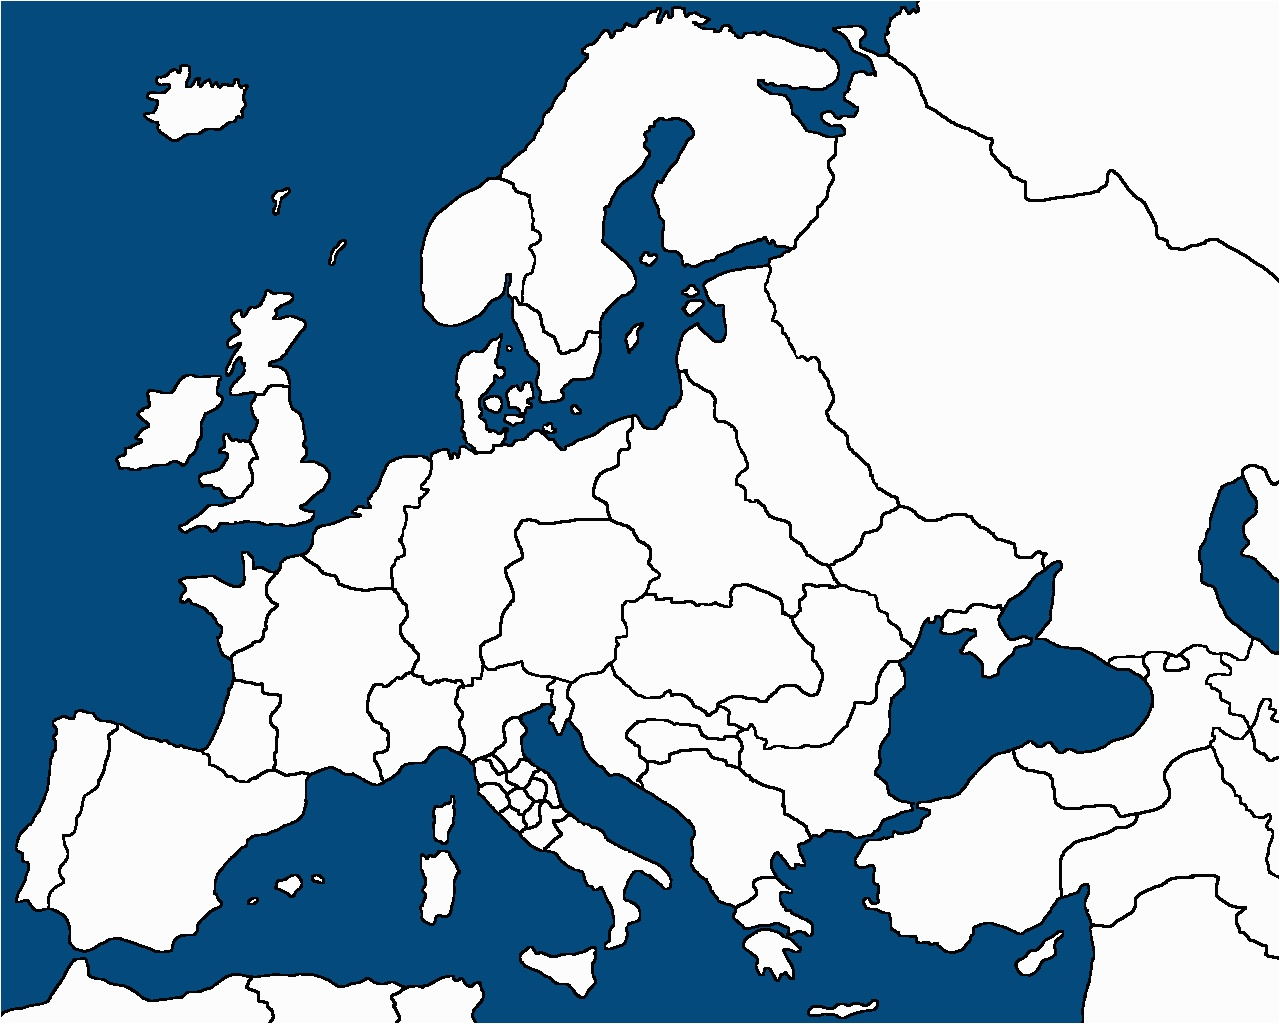 Map clipart simple. Europe images image of